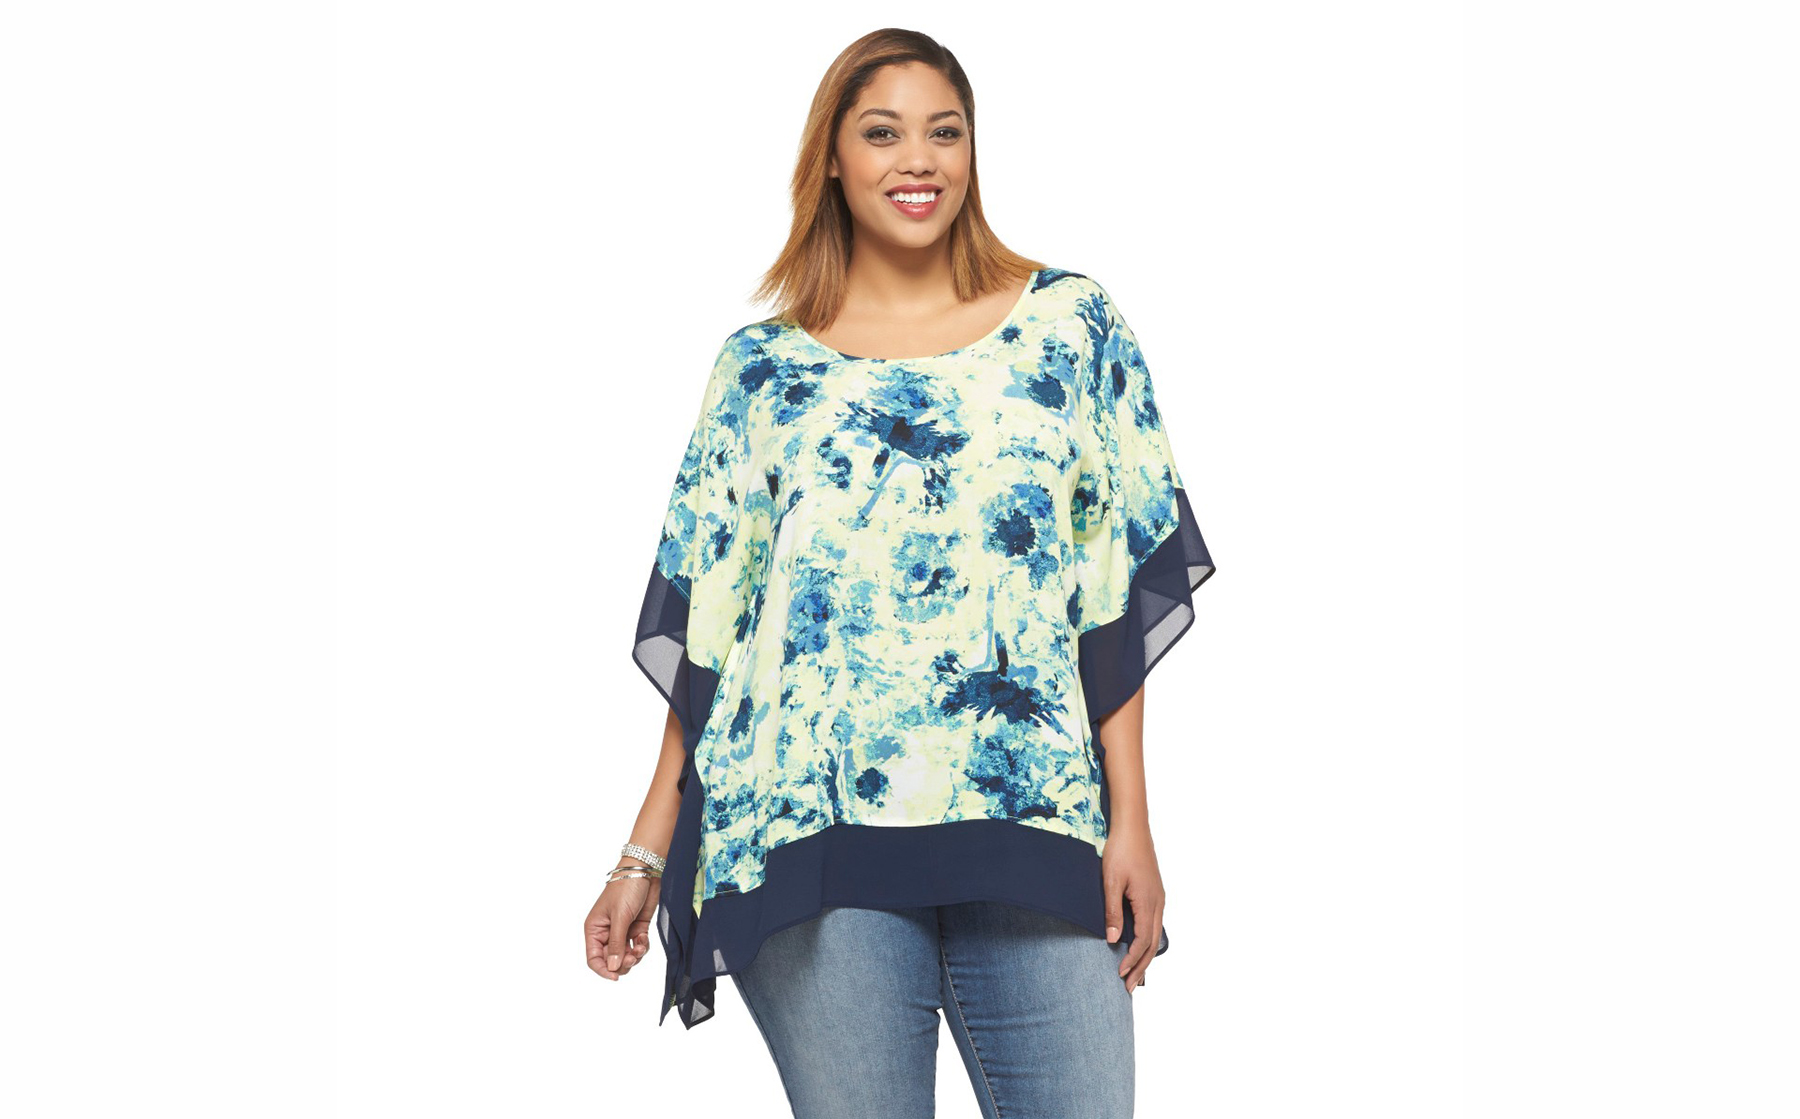 dd302e7a506 9 Clothing Brands That Are Revolutionizing the Plus-Size Market ...